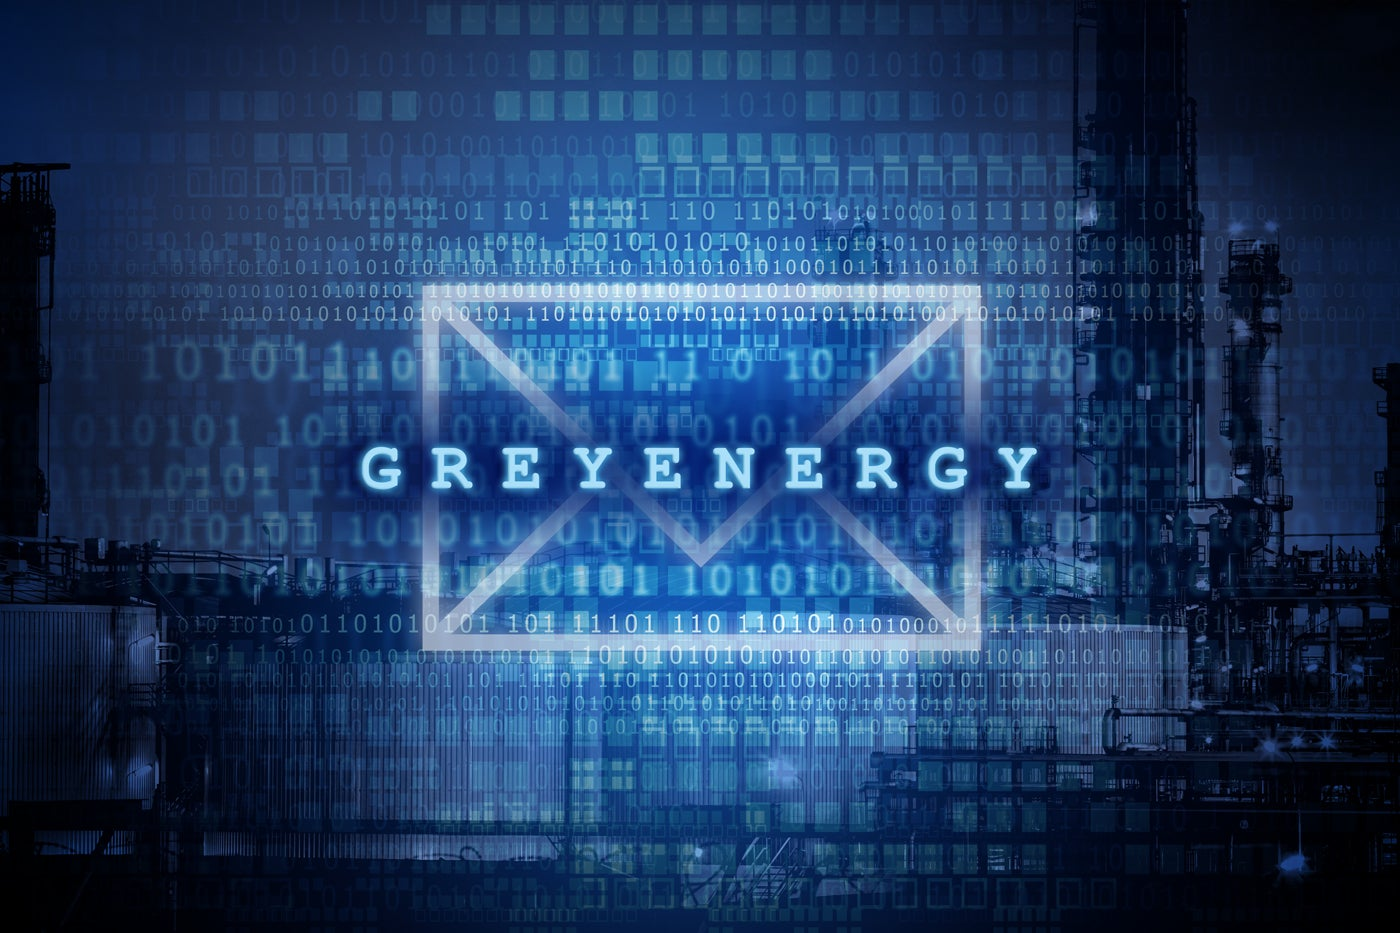 GreyEnergy Malware Research Paper: Maldoc to Backdoor